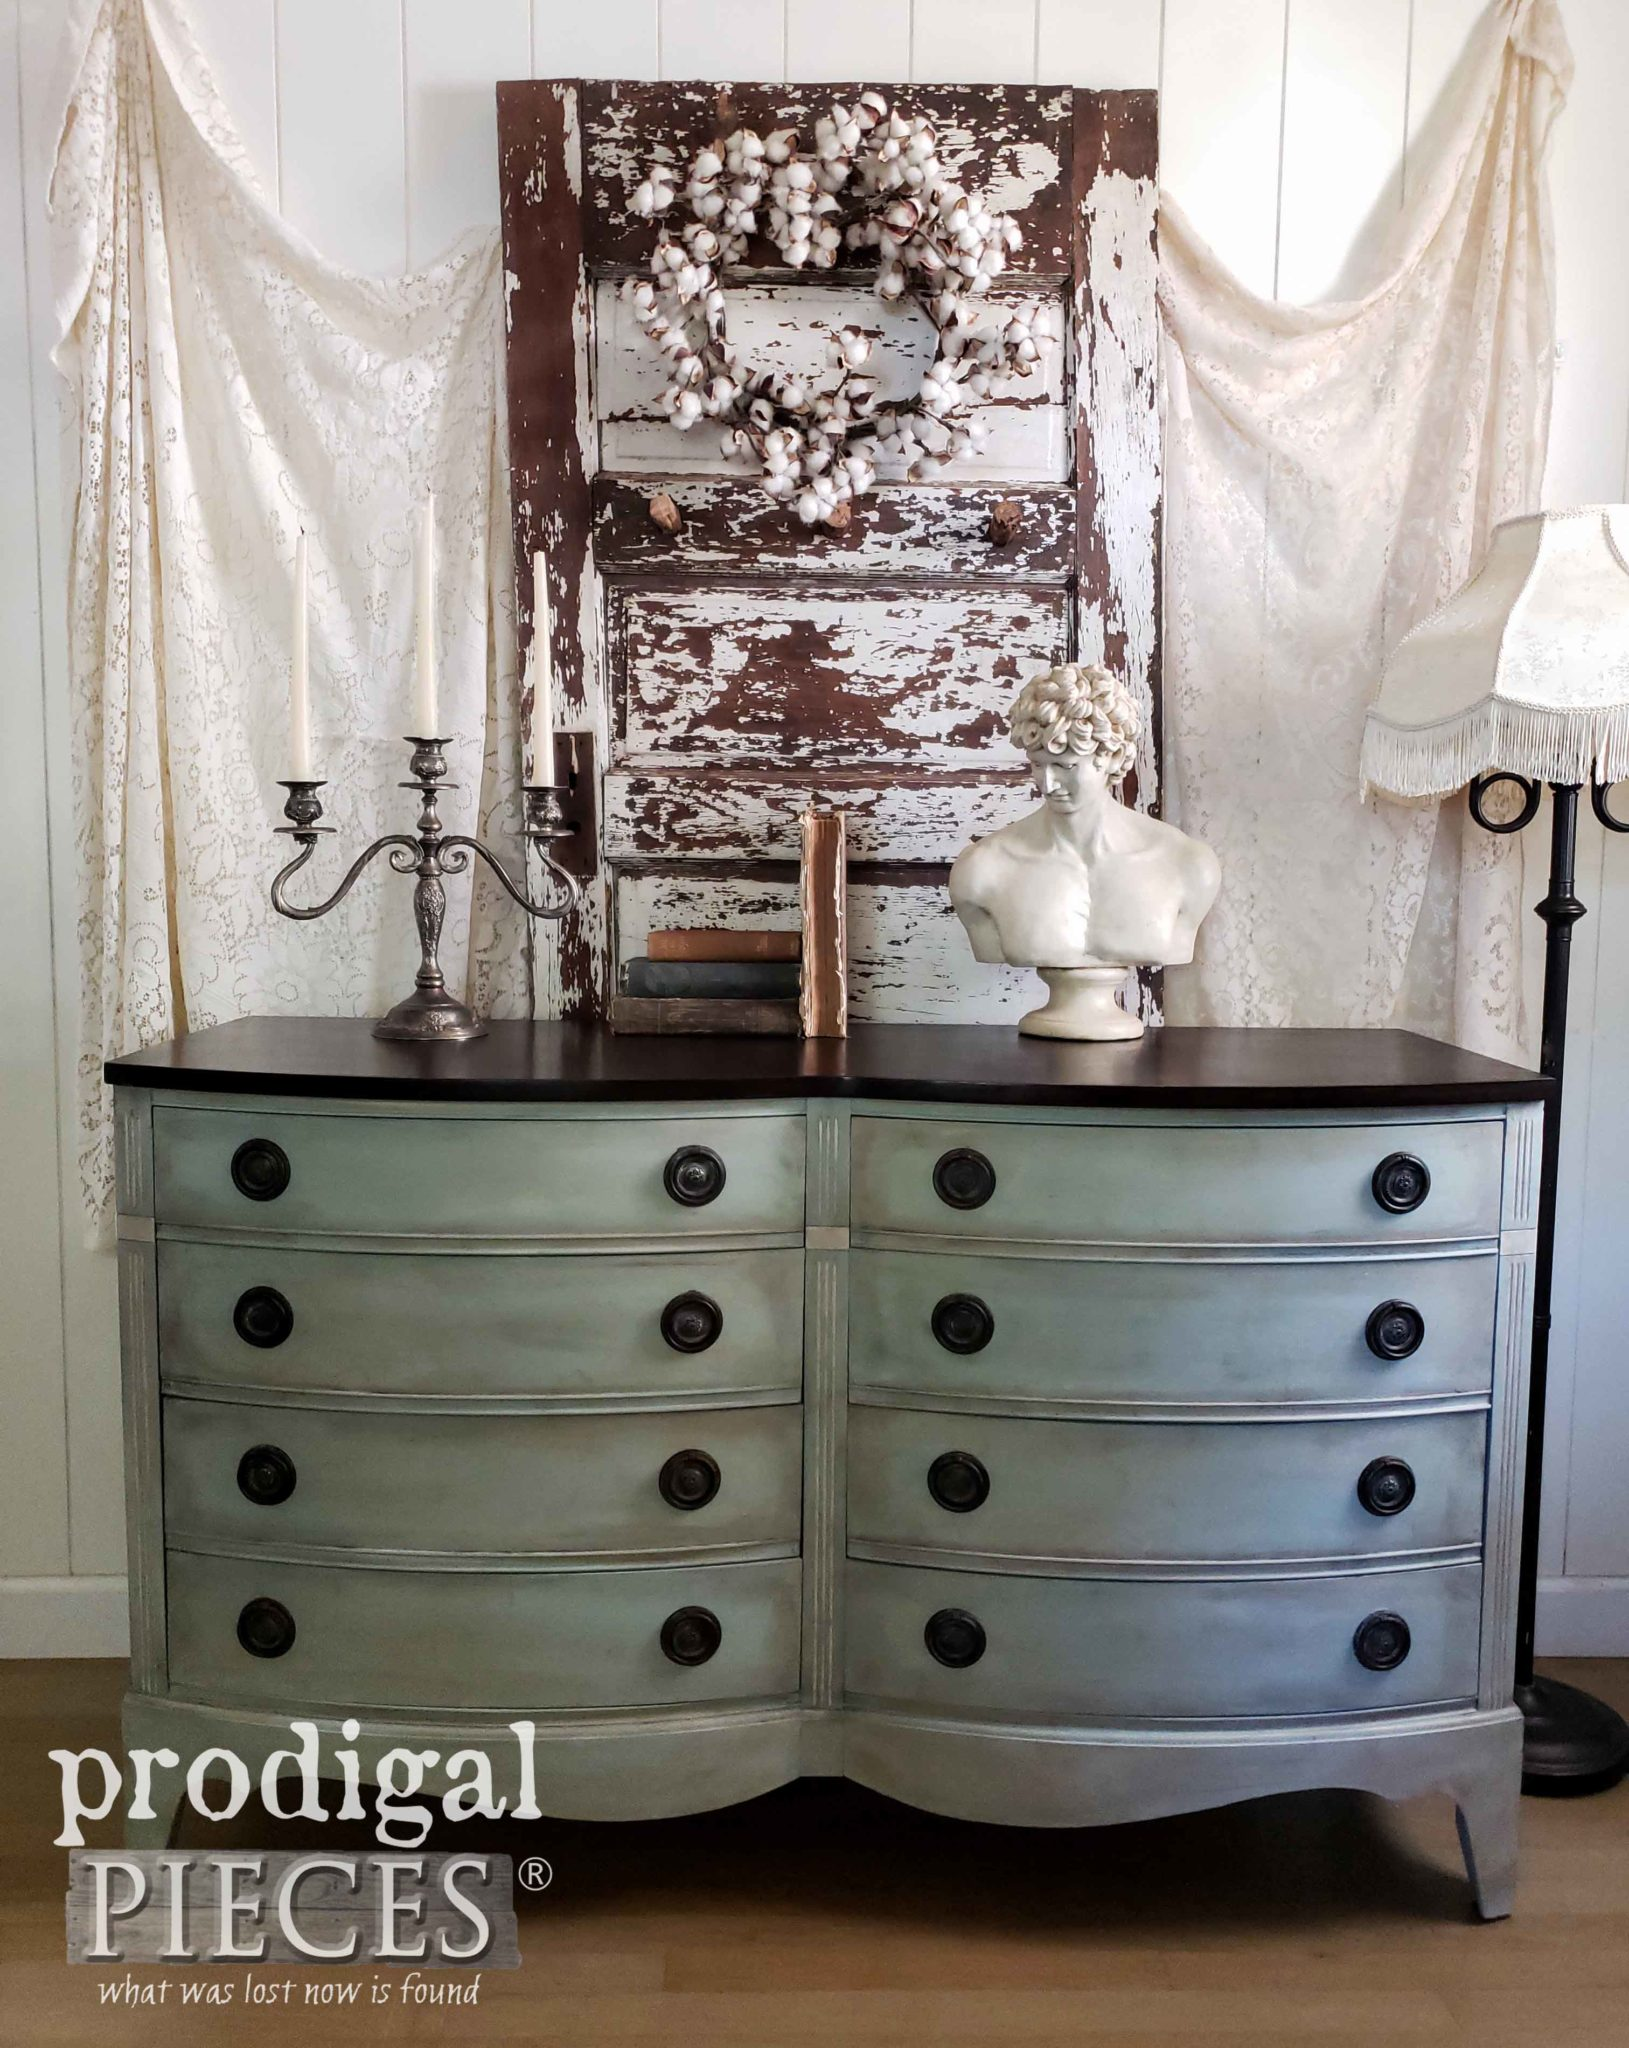 Absolutely Stunning Vintage Dixie Dresser with Frottage Technique by Larissa of Prodigal Pieces | prodigalpieces.com #prodigalpieces #furniture #diy #home #homedecor #homedecorideas